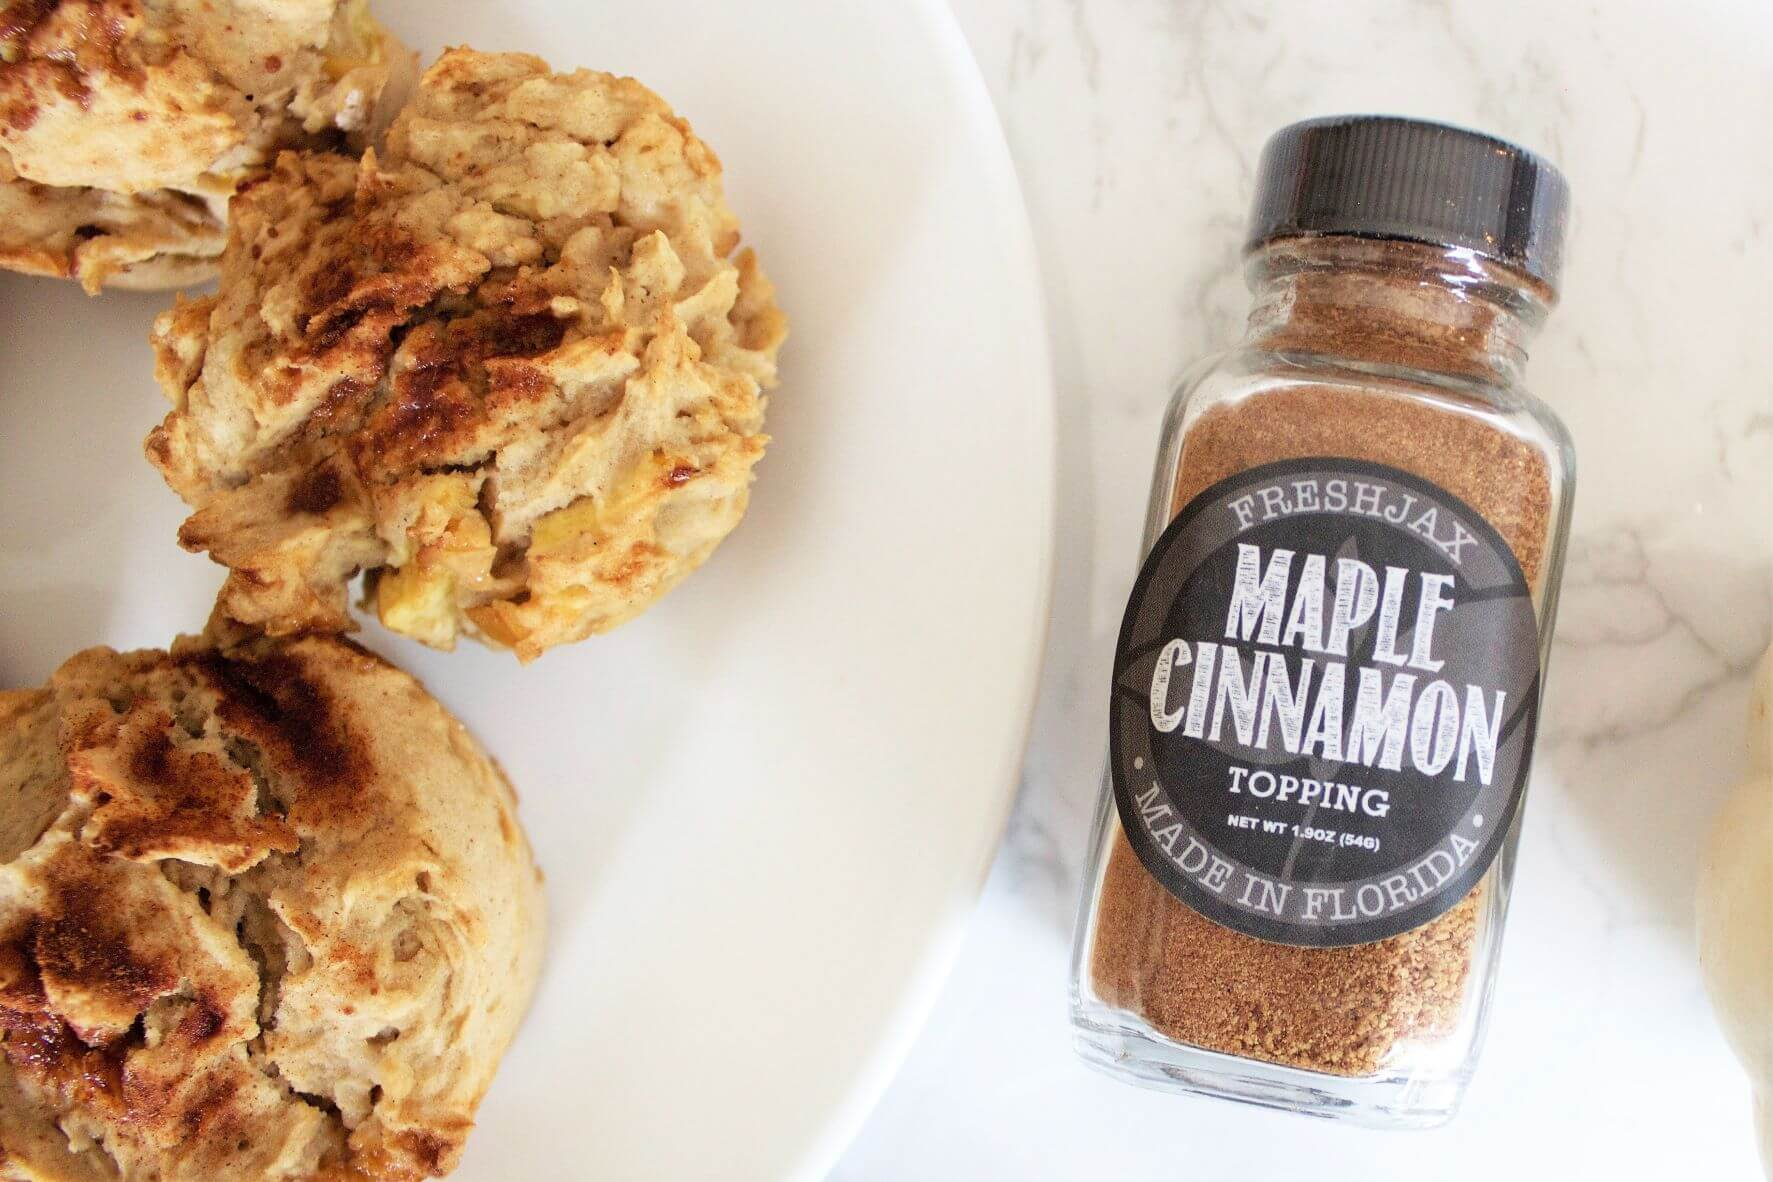 A plate of maple cinnamon apple muffins next to a sample size bottle of FreshJax Organic Maple Cinnamon Topping.